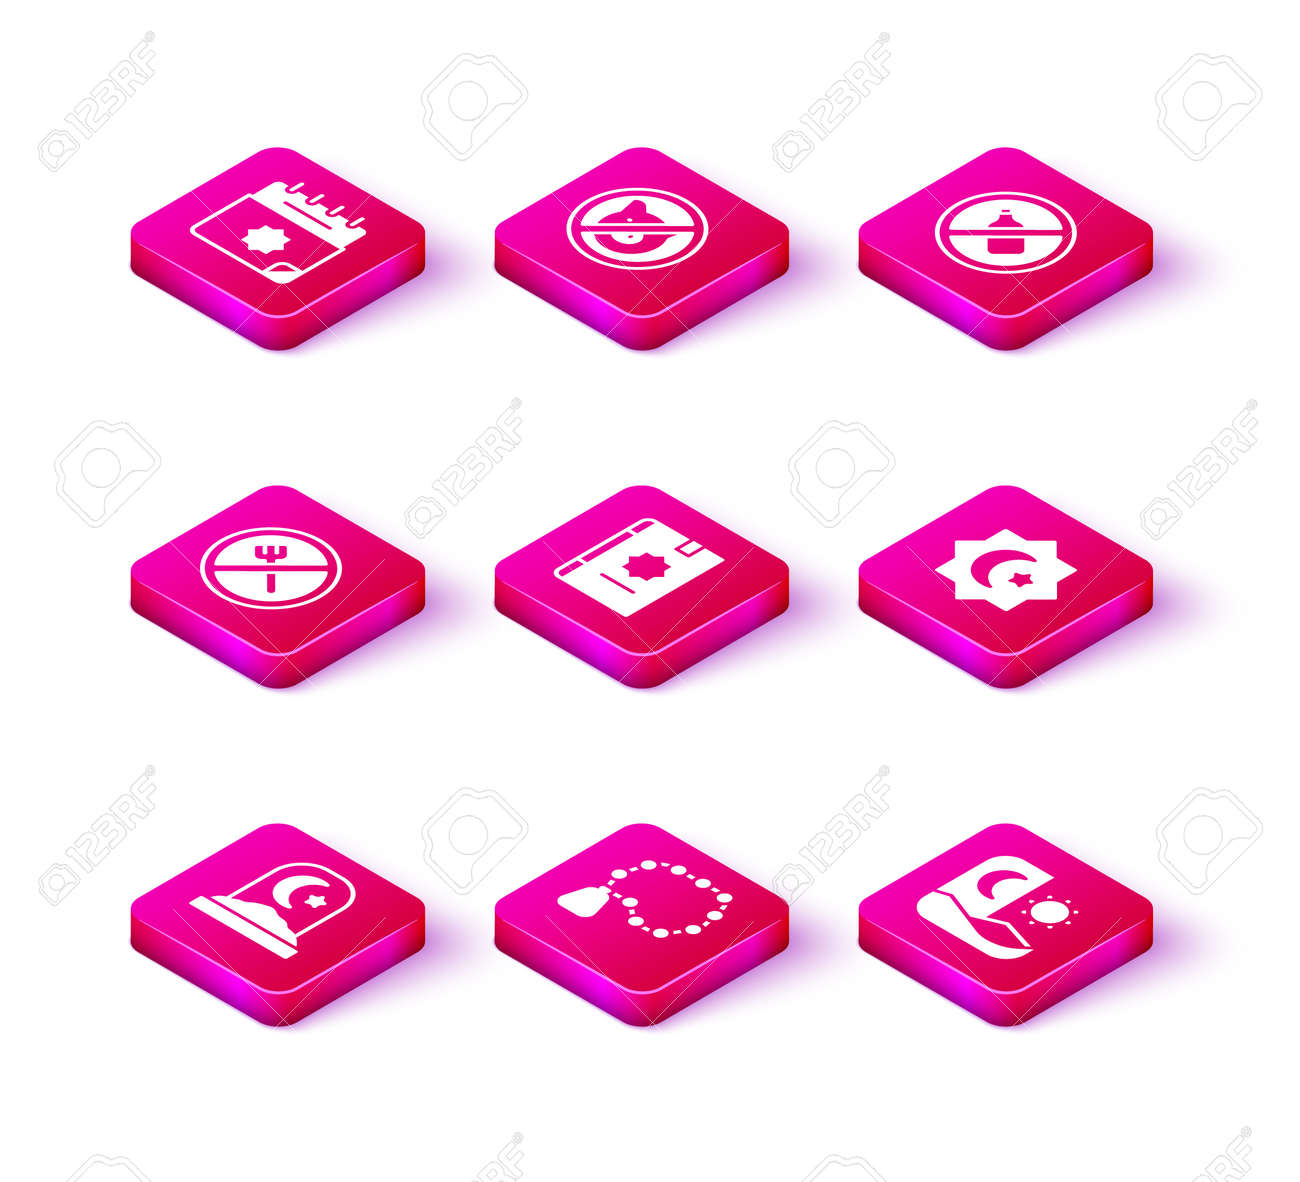 Set Muslim cemetery, Rosary beads religion, Ramadan fasting, Holy book of Koran, Octagonal star, No alcohol and pig icon. Vector - 173396246